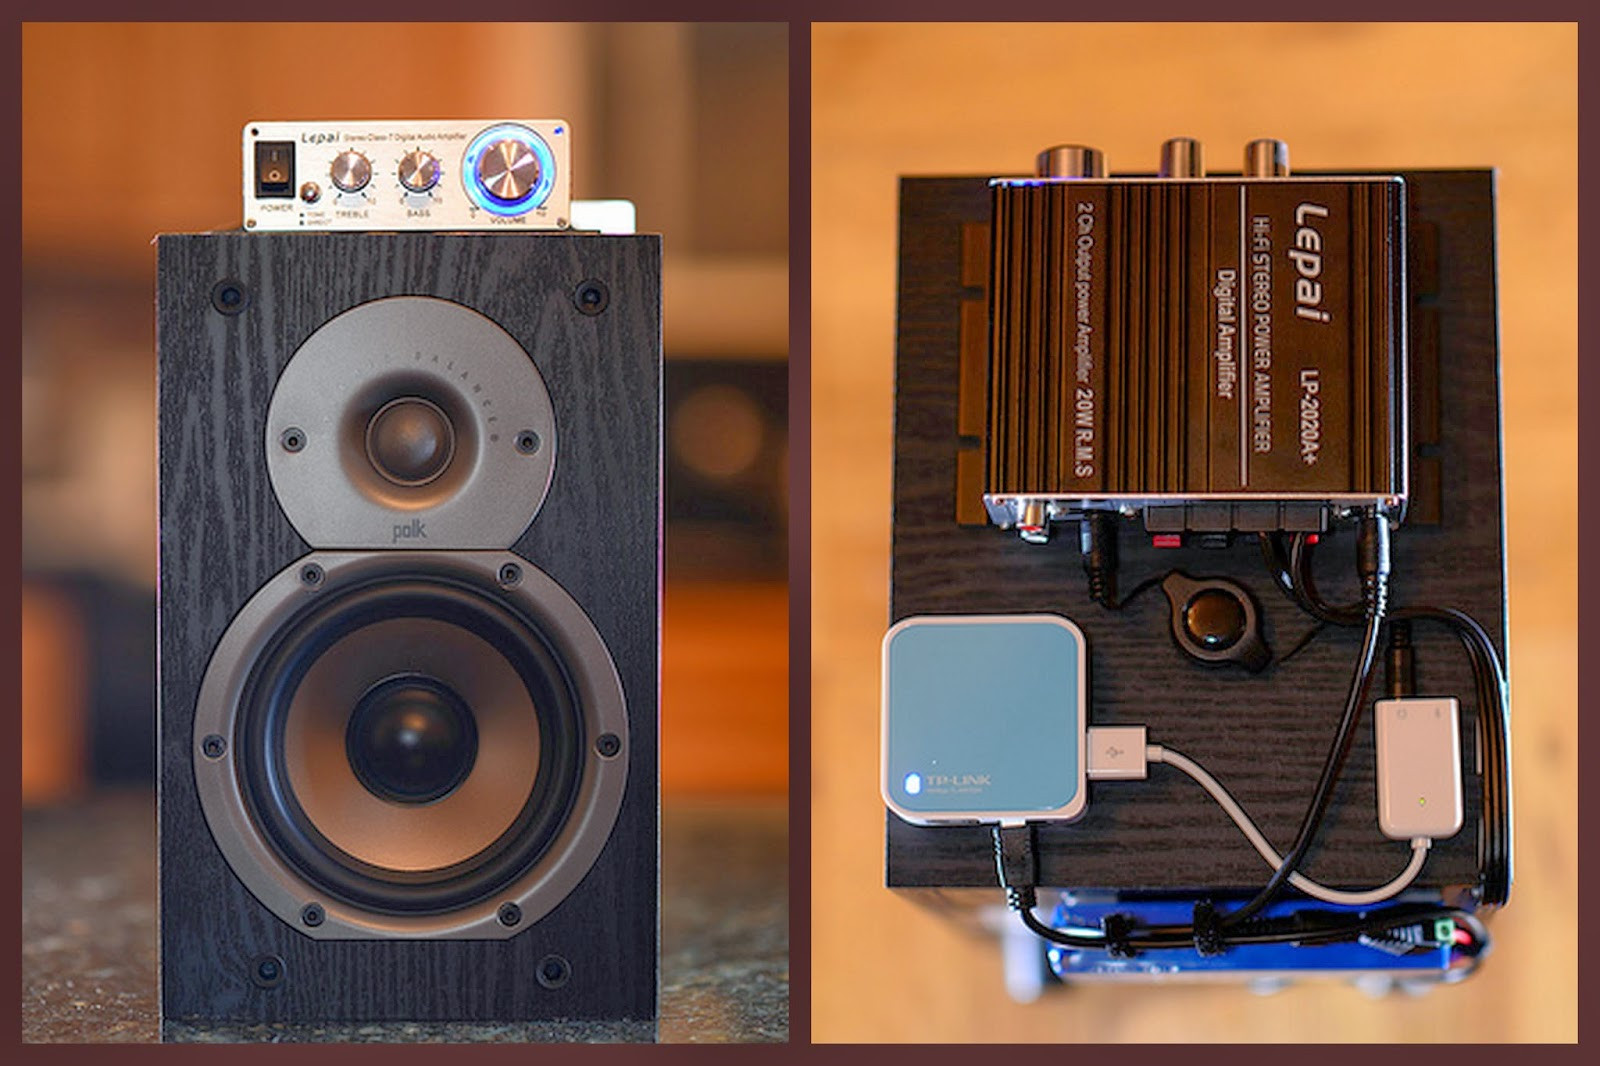 Best ideas about DIY Portable Speakers . Save or Pin Qui s techNOLOGY Blog DIY Portable AirPlay Speaker System Now.